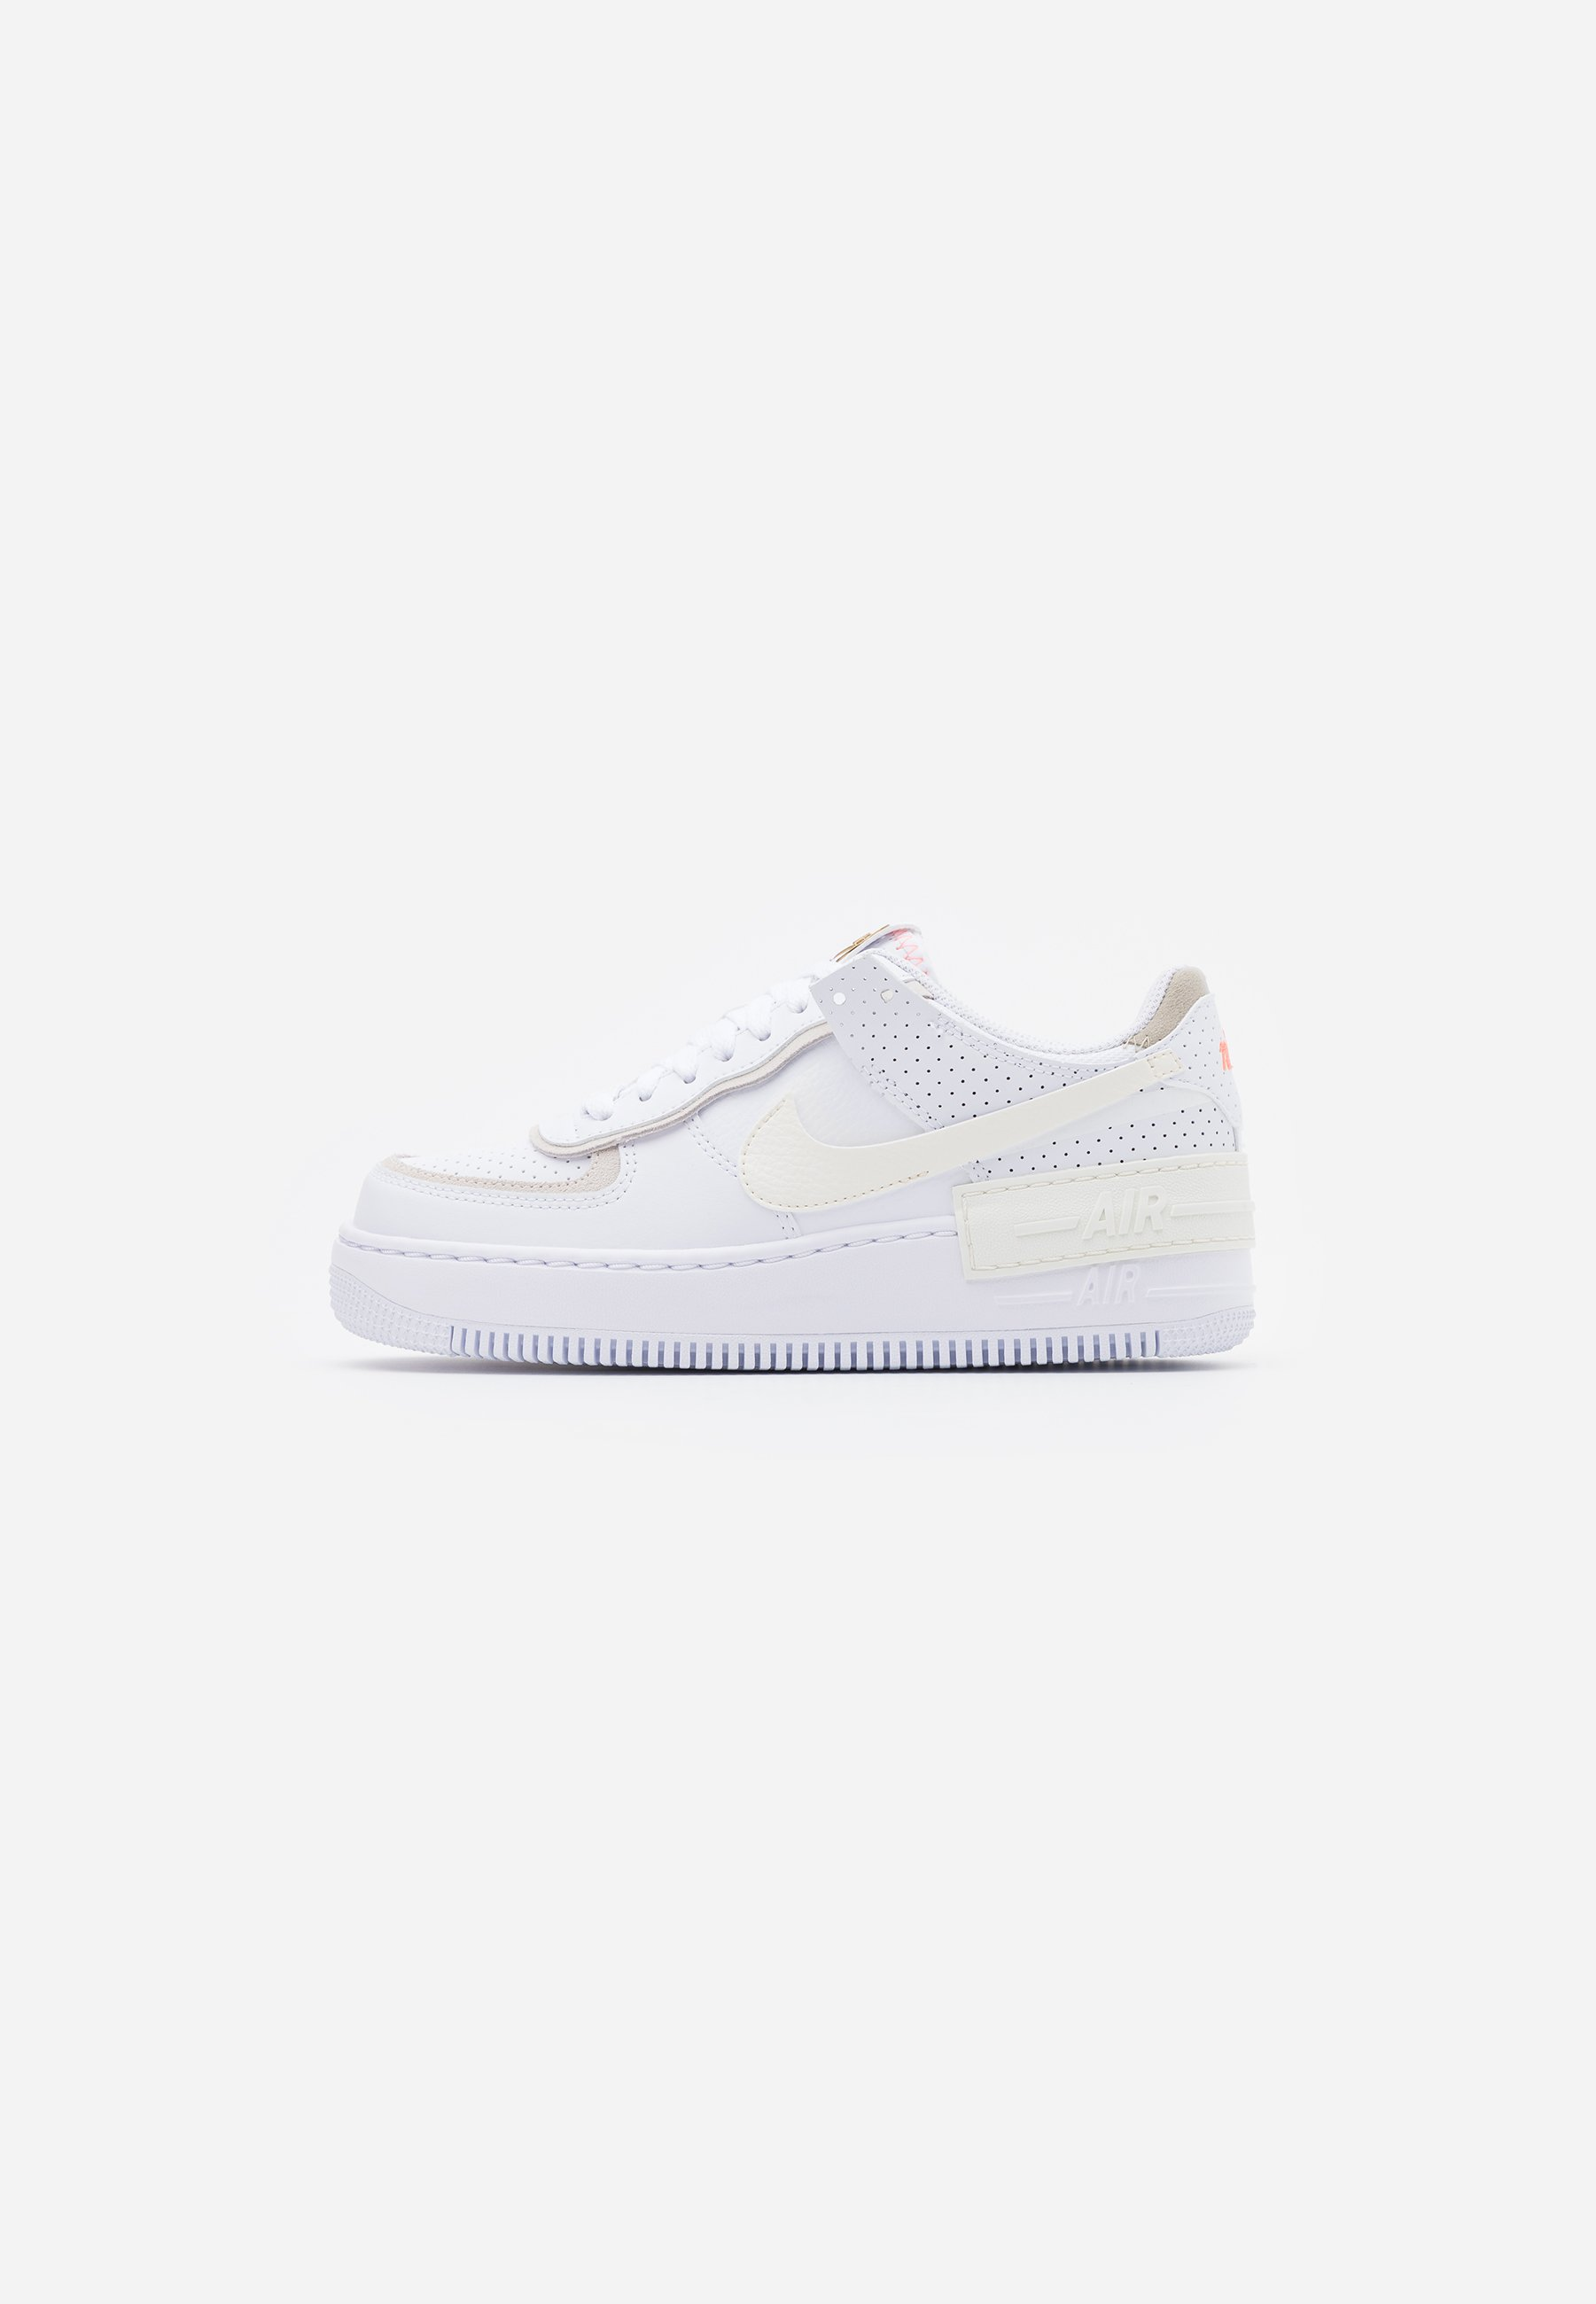 AIR FORCE 1 SHADOW Sneakers whitesailstoneatomic pink